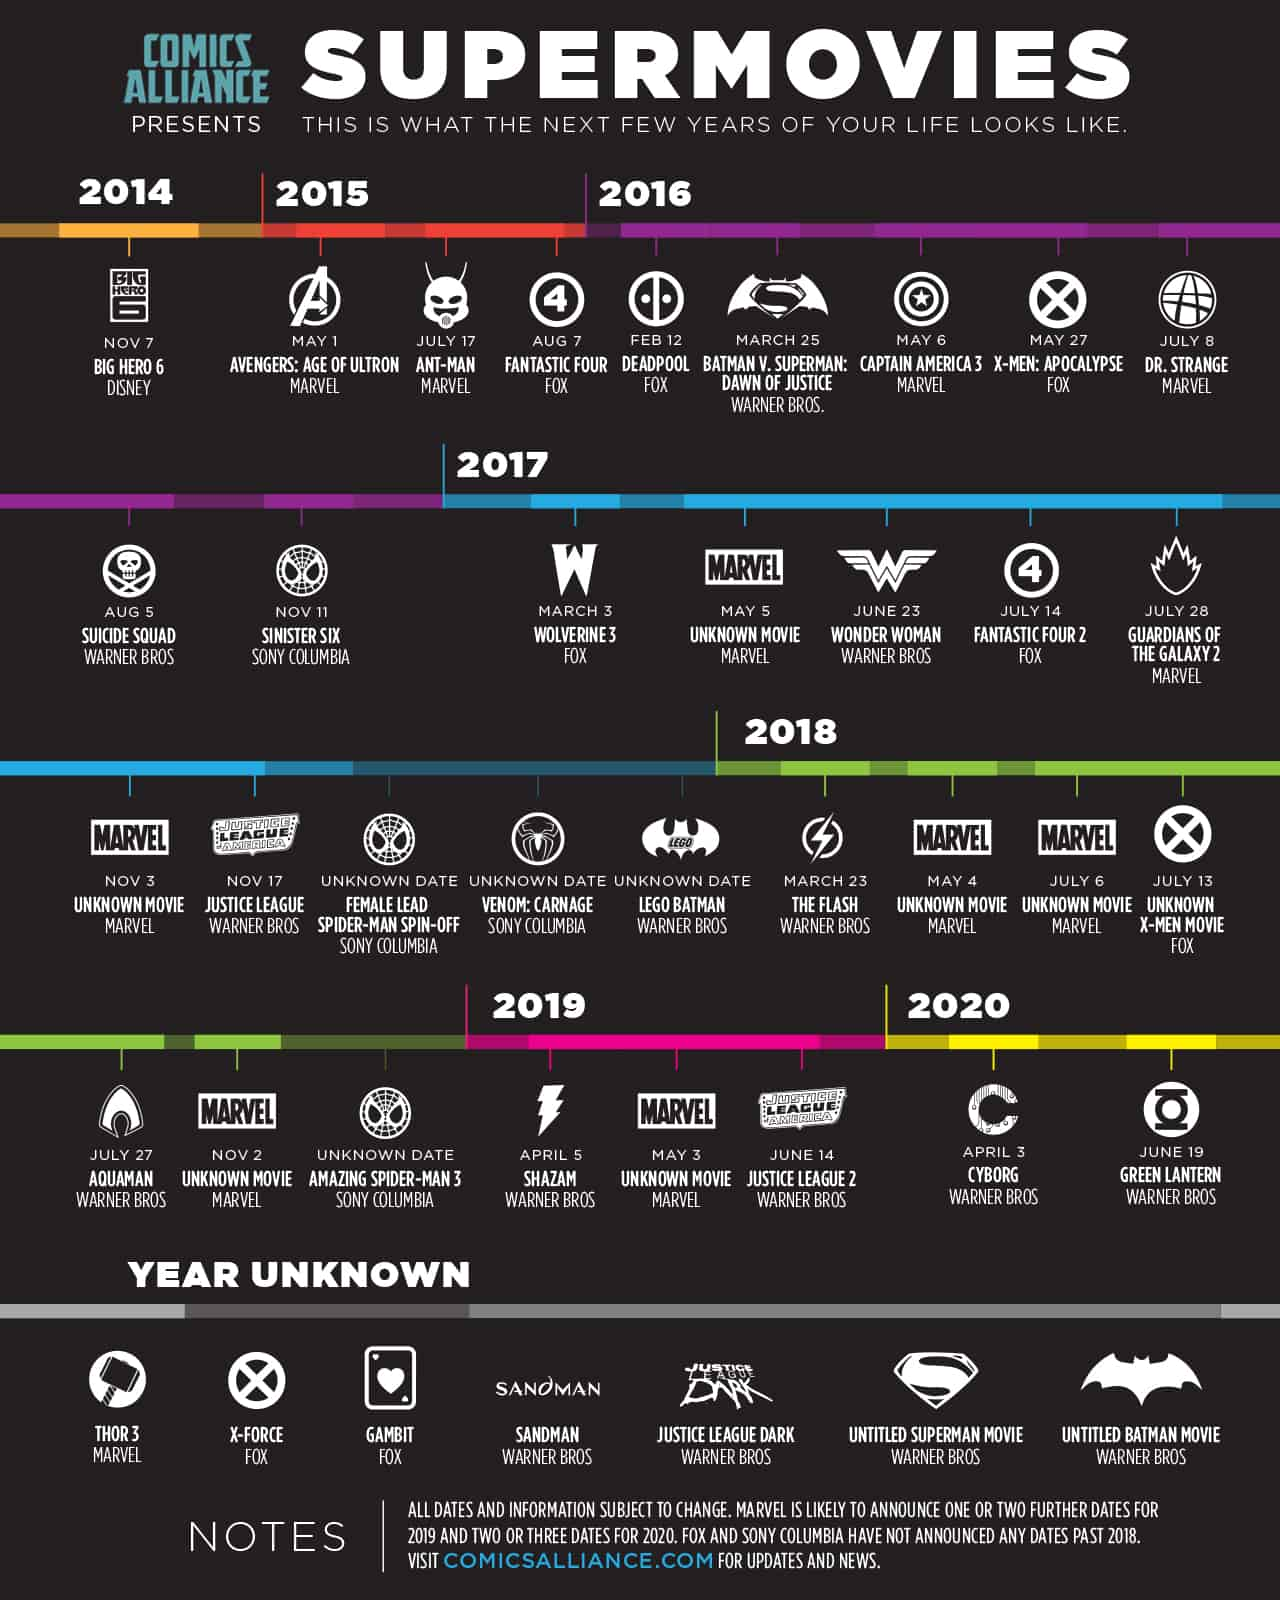 Superhero Movie Chart Let's You Plan The Next 6 Years Of